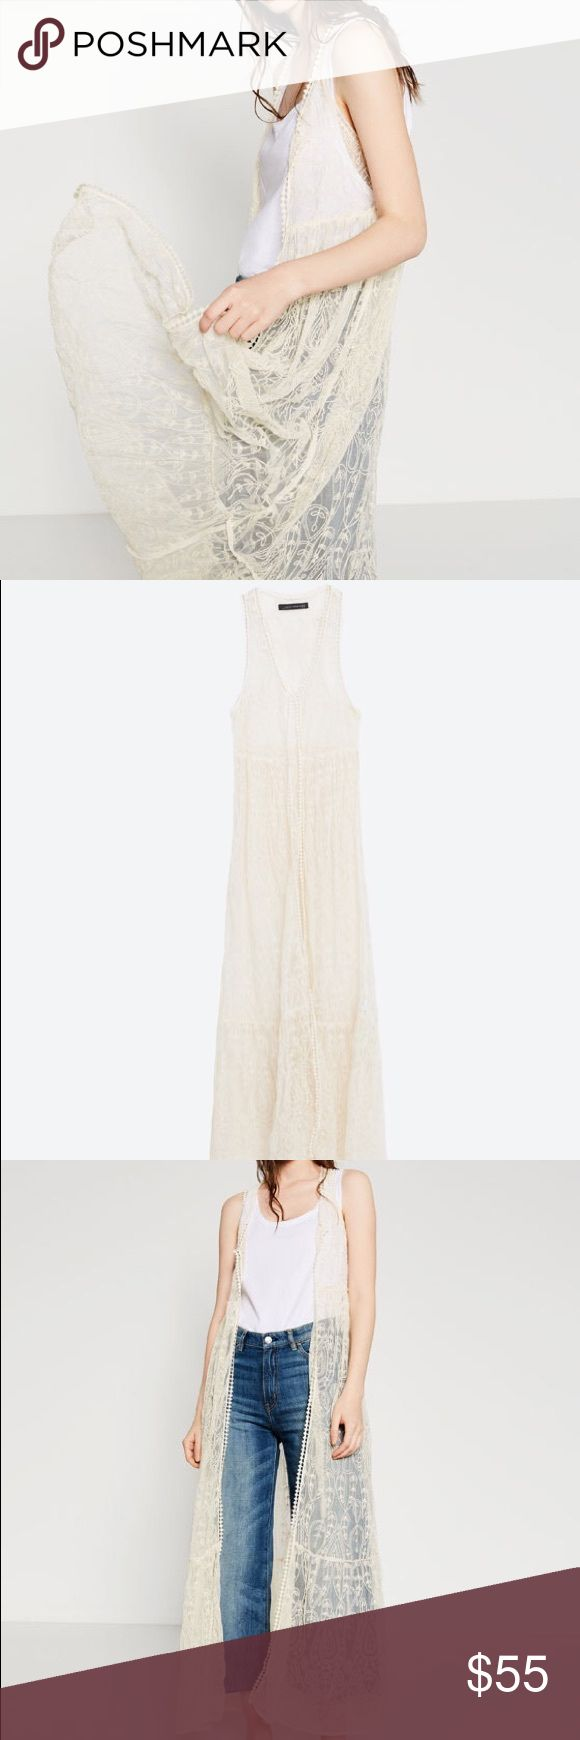 Long embroidered waistcoats (vest) Long lace waistcoat with embroidery.... Main fabric 100% polyester..... Lace 100% cotton.... Embroidery 100% cotton... Adds great interest to t shirt and jeans! Zara Jackets & Coats Vests